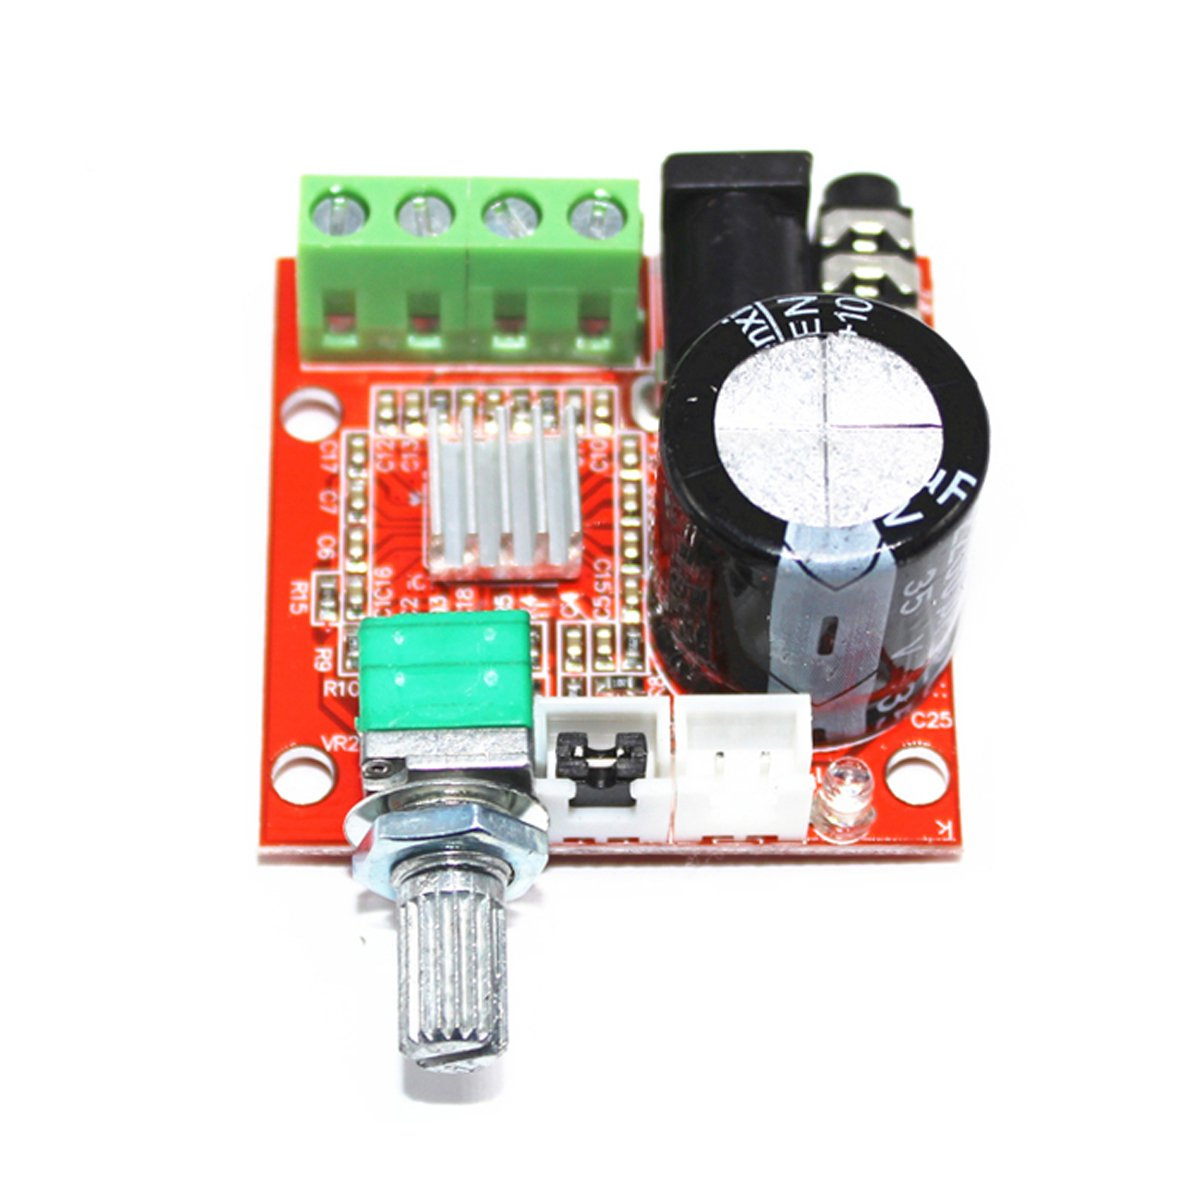 Megmoki Pam8610 10w Amplifier Mini Stereo Amp Audio Chargecompensatedsampleandhold Amplifiercircuit Circuit Amplify Board 210w Dual Channel Class D Dc8v 12v Electronics